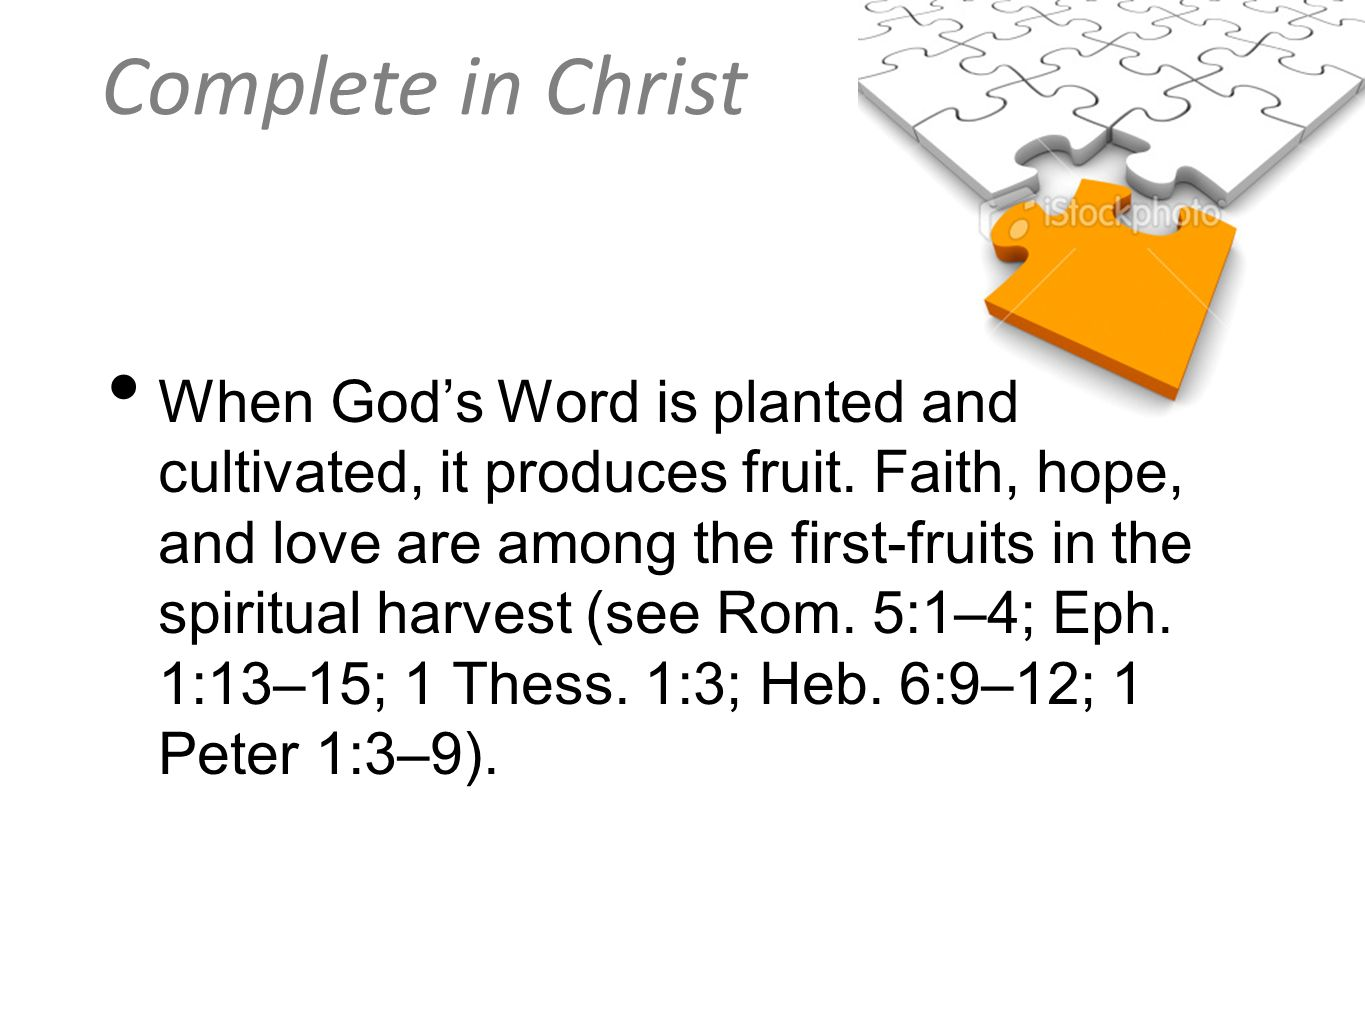 When God's Word is planted and cultivated, it produces fruit